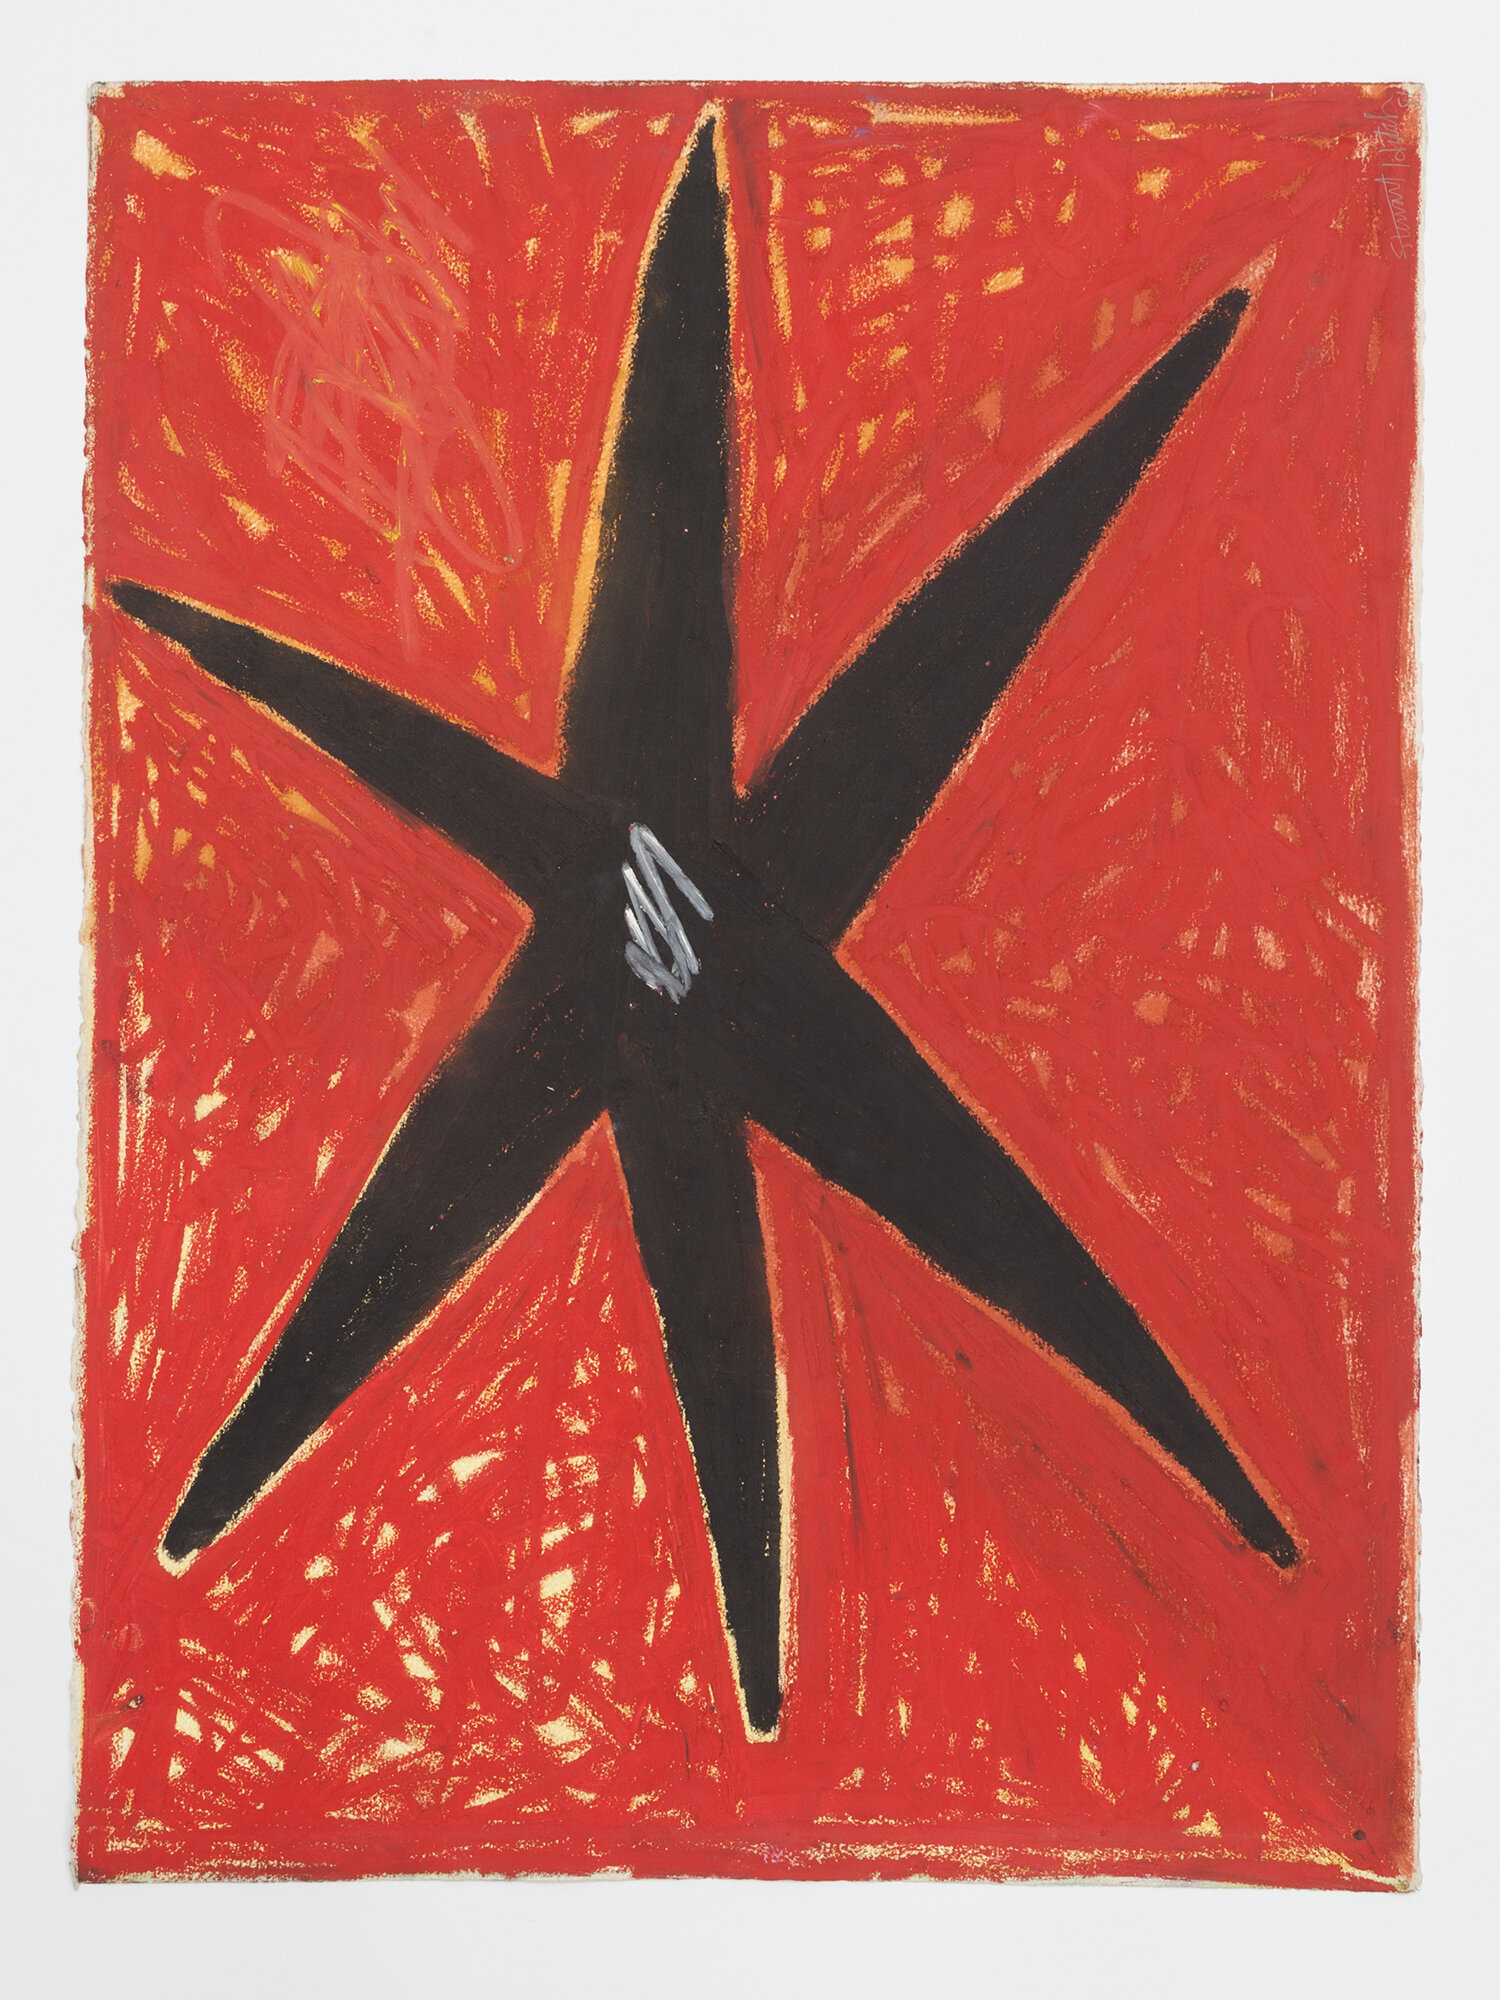 Stewart Hitch  Untitled , 1981, Oil stick on paper 30 x 22 inches